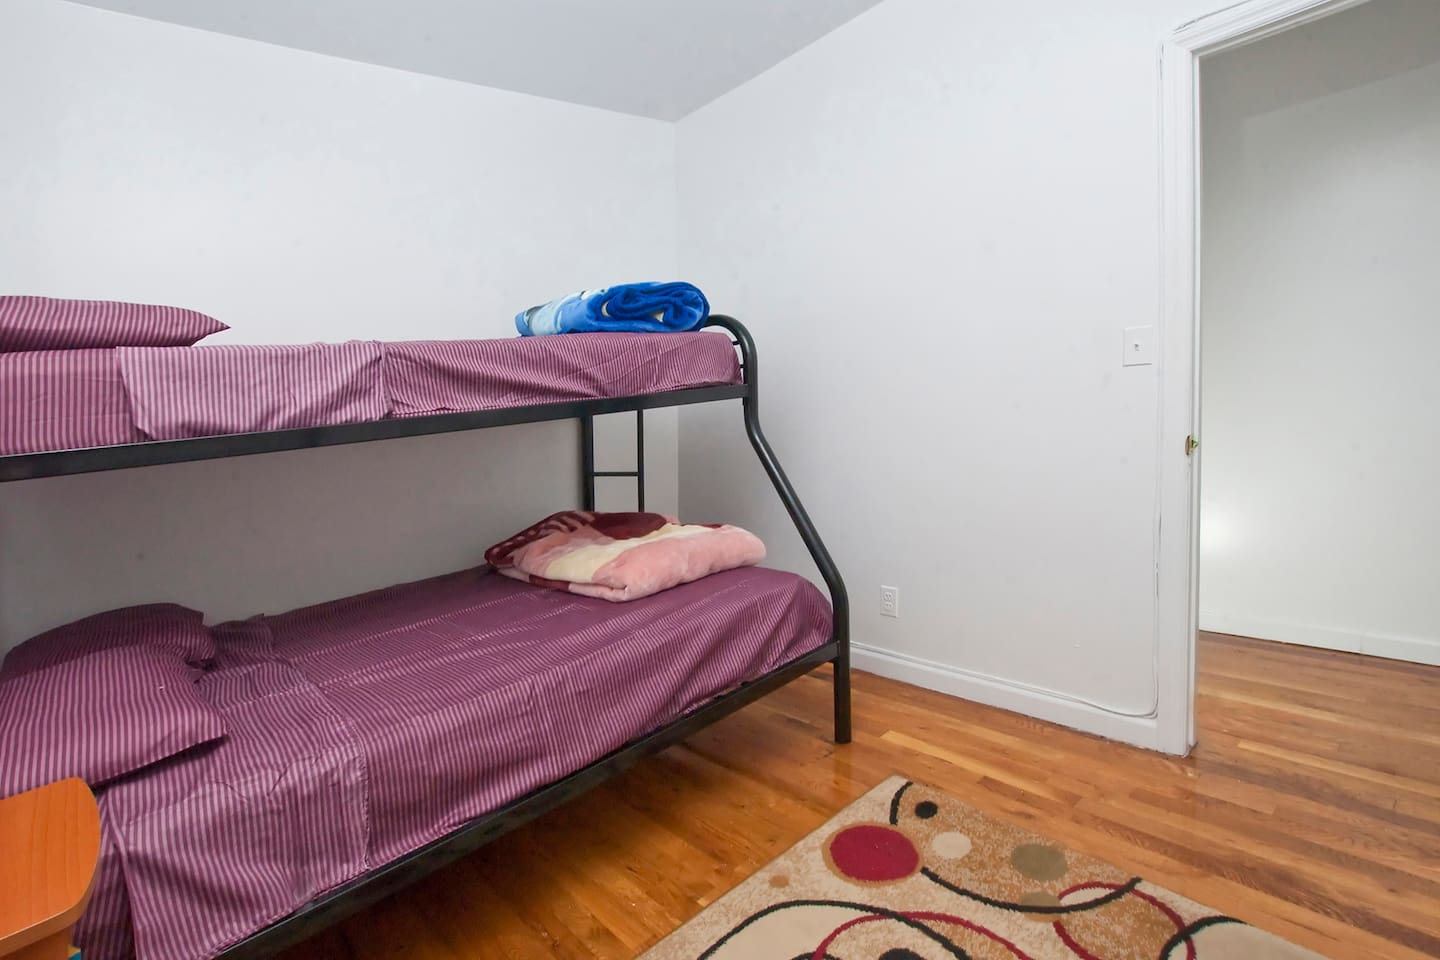 here is your room. Bottom bunk can fit 2, top bunk fits 1. the ottoman/cot you see on the left is no longer available (it was damaged by a guest), The room only has the bed... sleeps 3 comfortably... you are welcome to fit more if you see fit